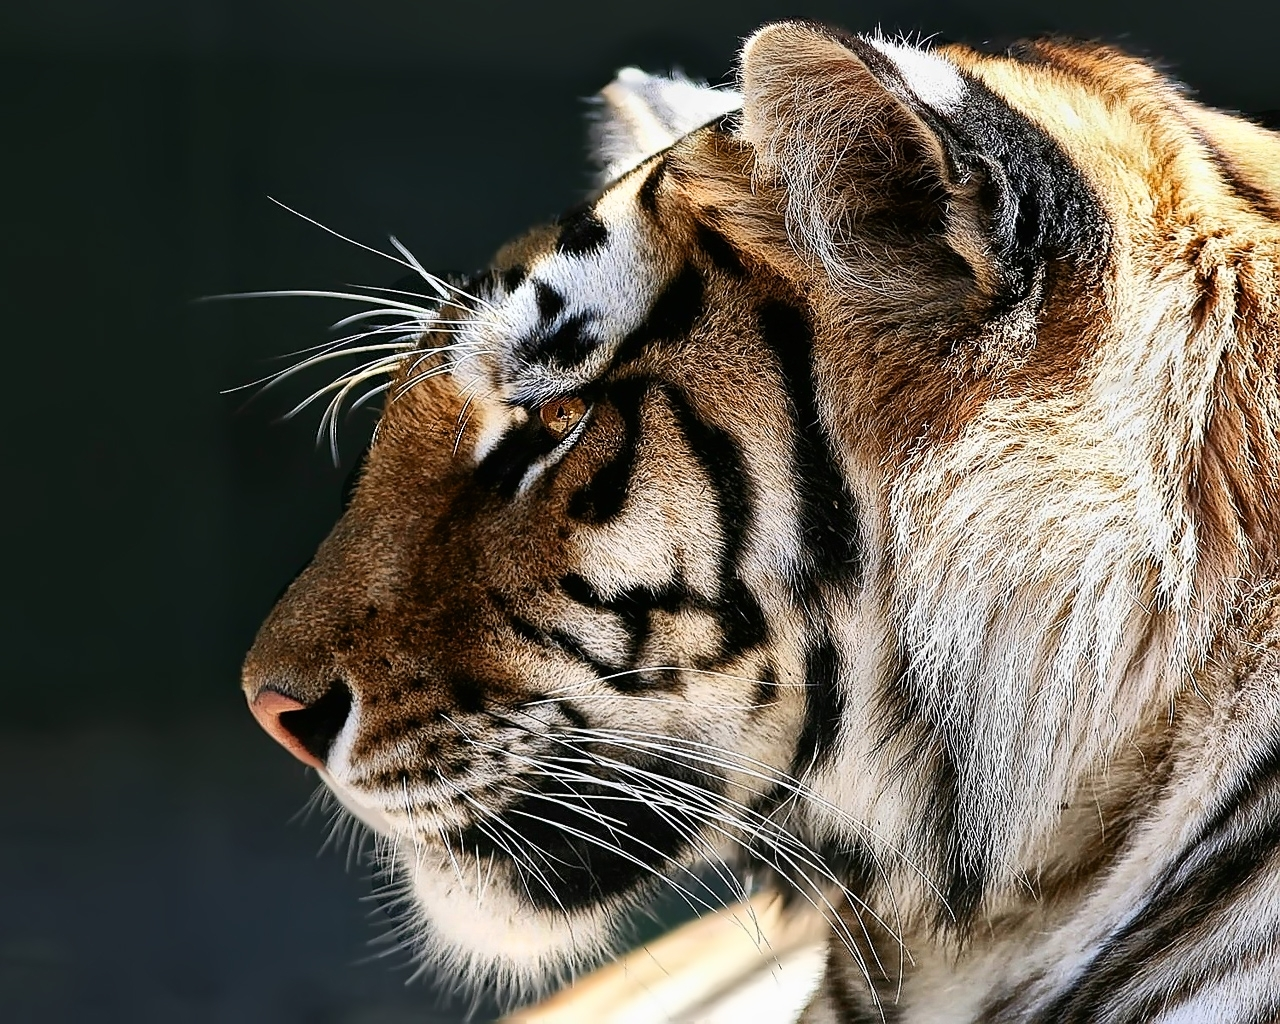 10822 download wallpaper Animals, Tigers screensavers and pictures for free